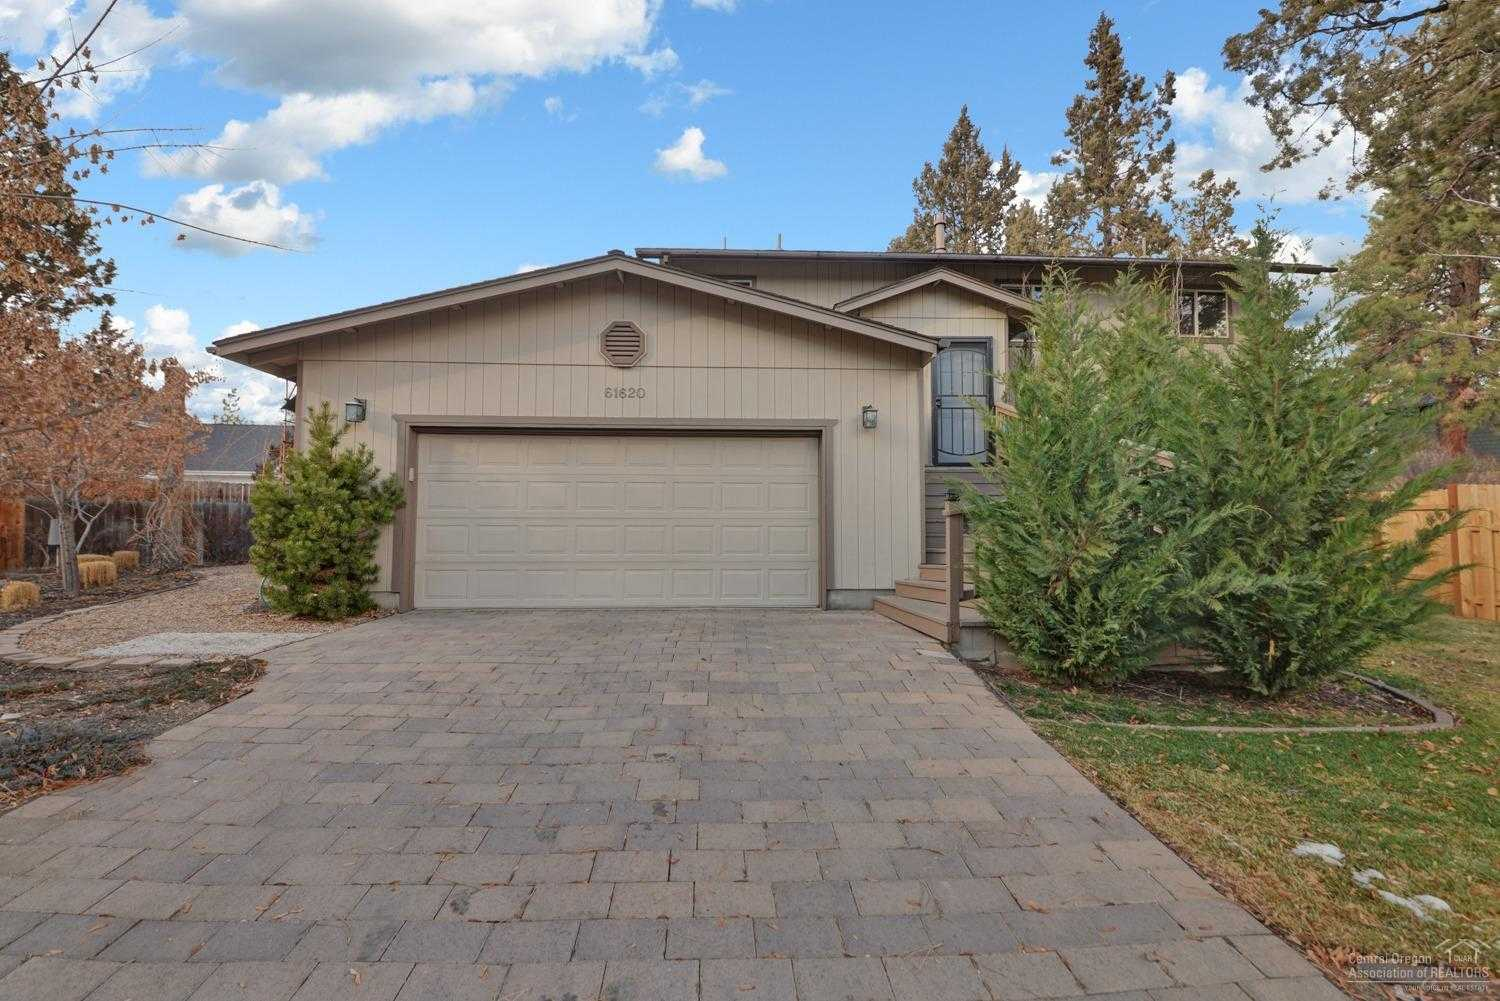 $469,500 - 3Br/2Ba -  for Sale in Bend